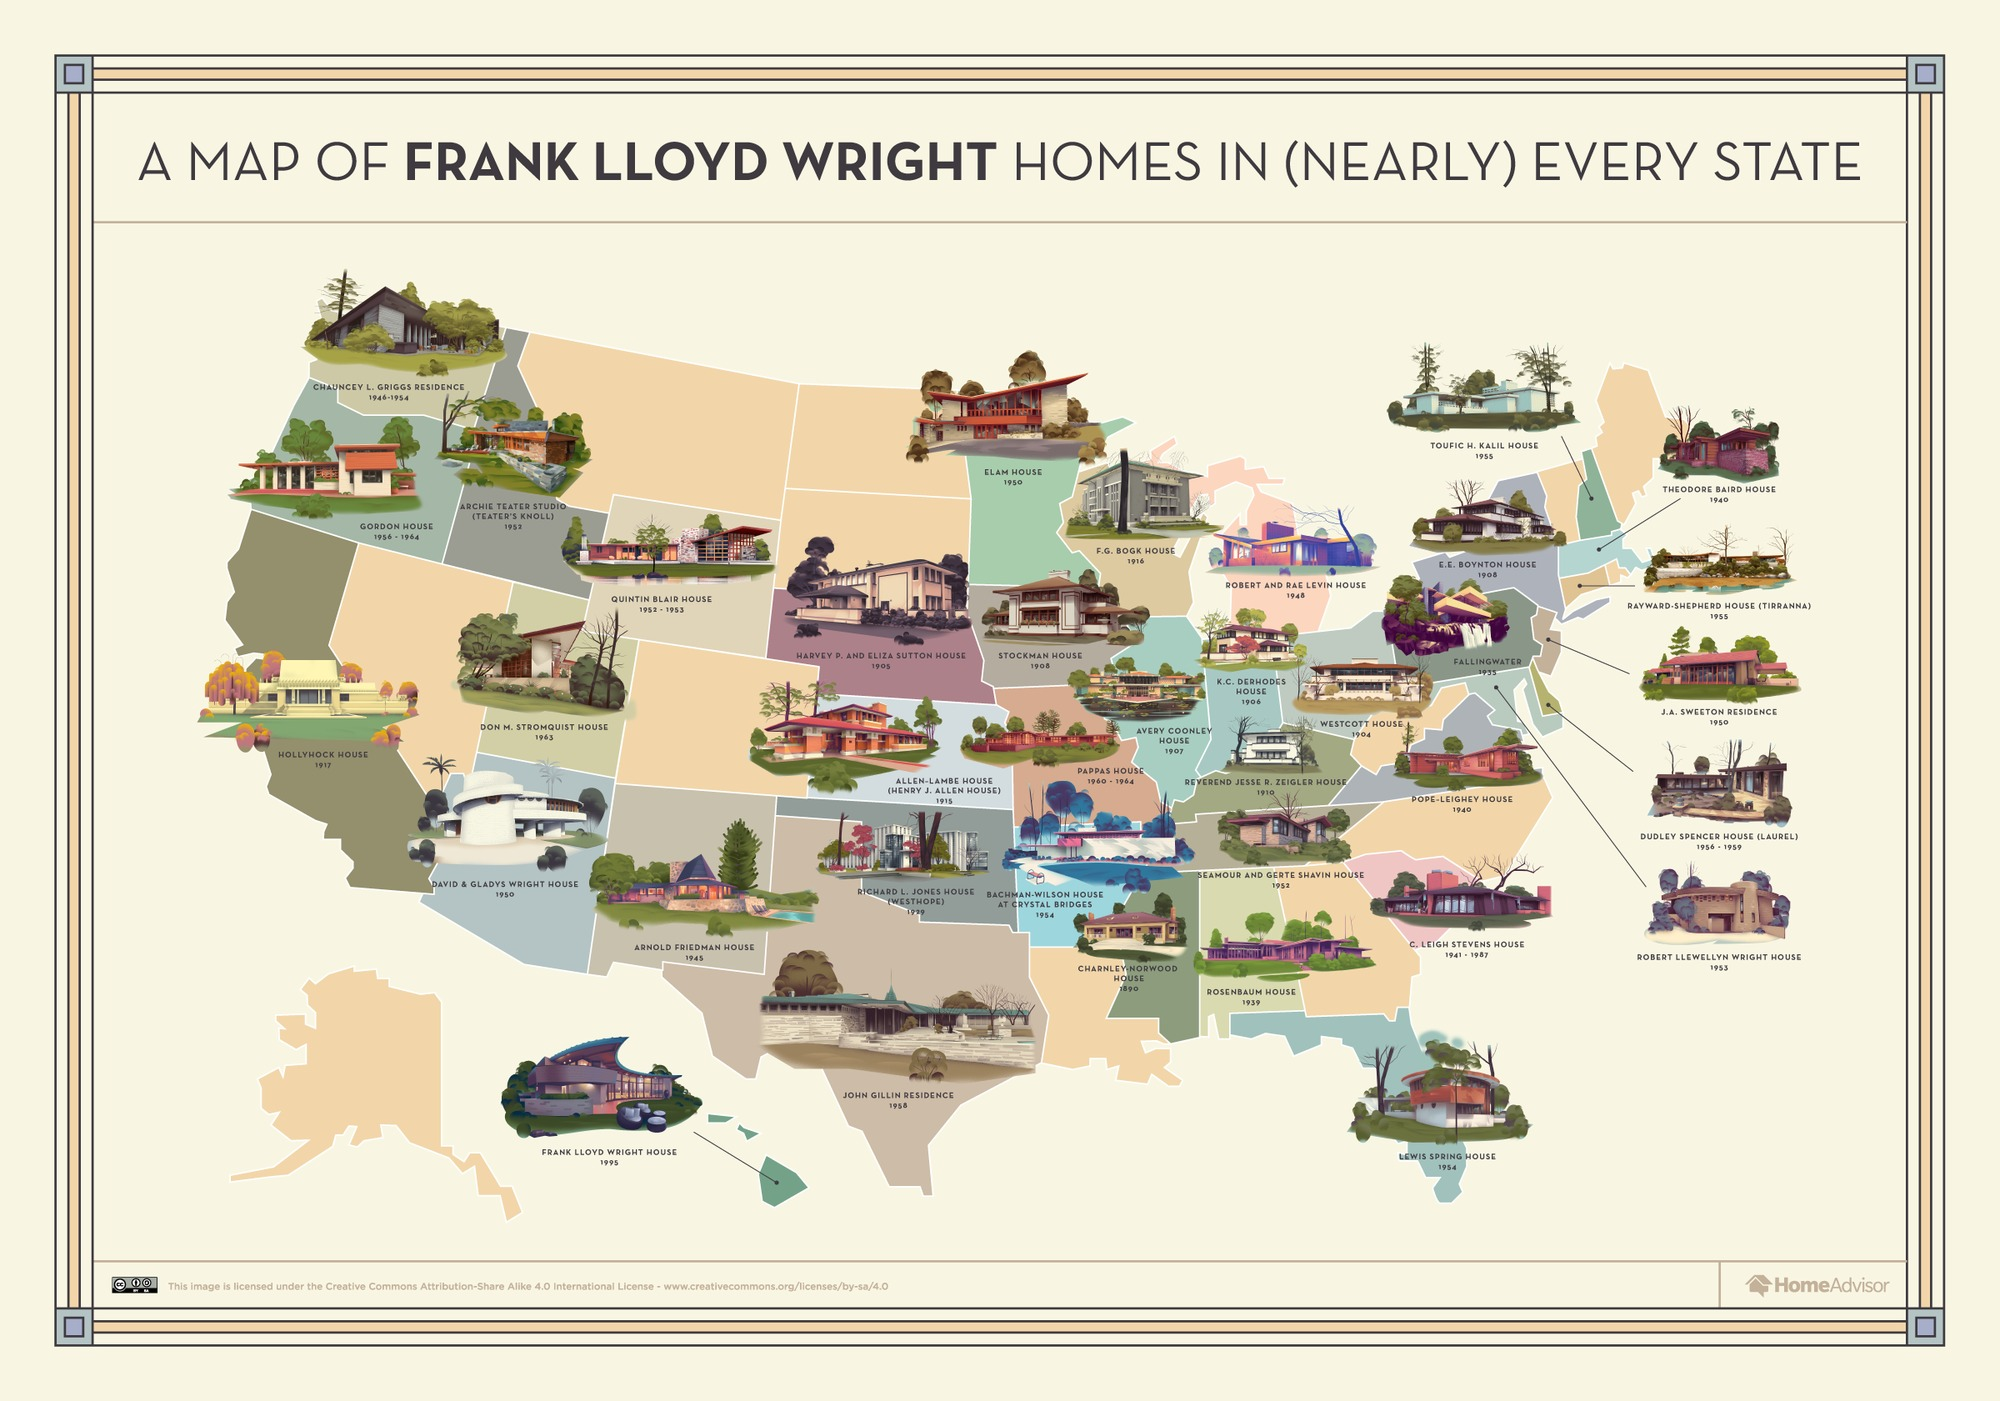 Gallery of Mapping Frank Lloyd Wright's Creations throughout the United States - 1